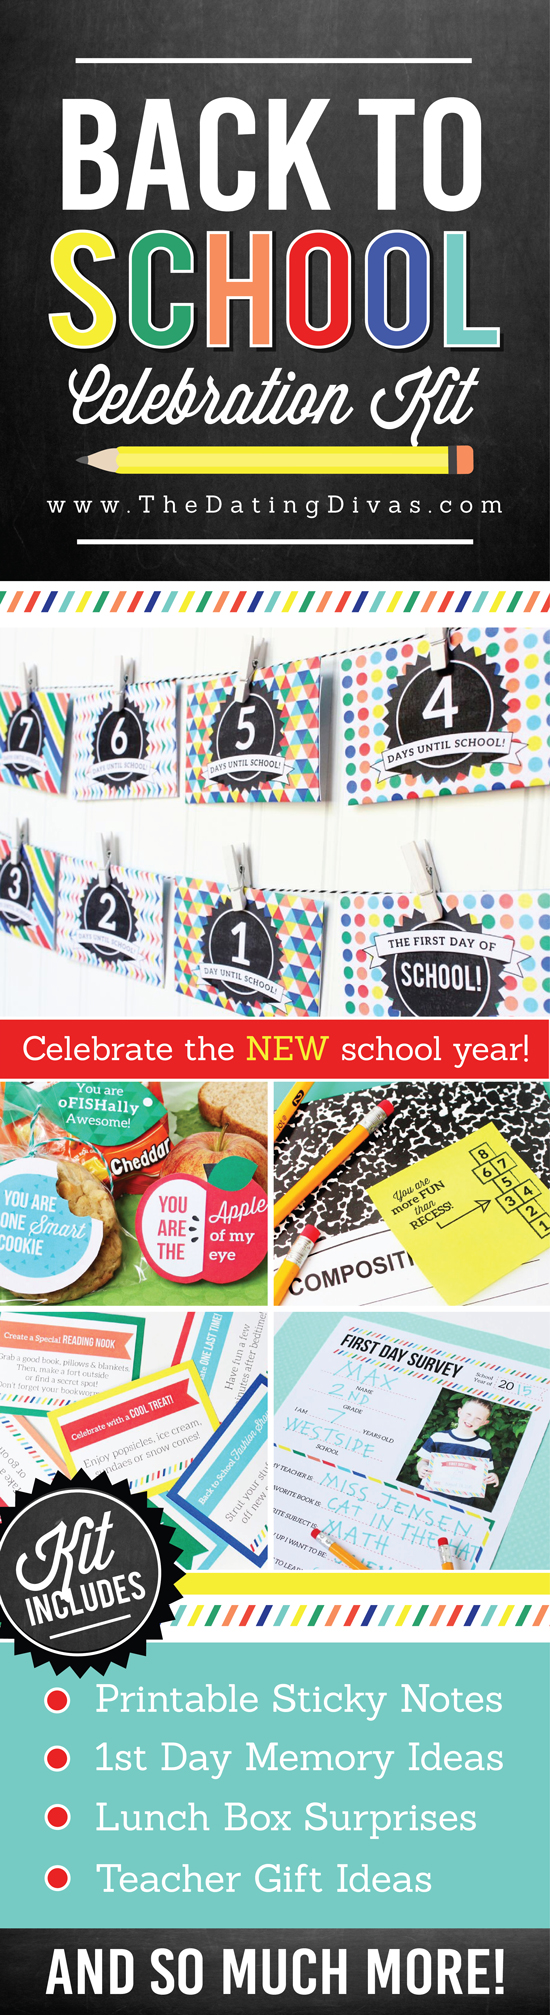 Back to School Celebration Printable Kit - Make going back to school FUN!